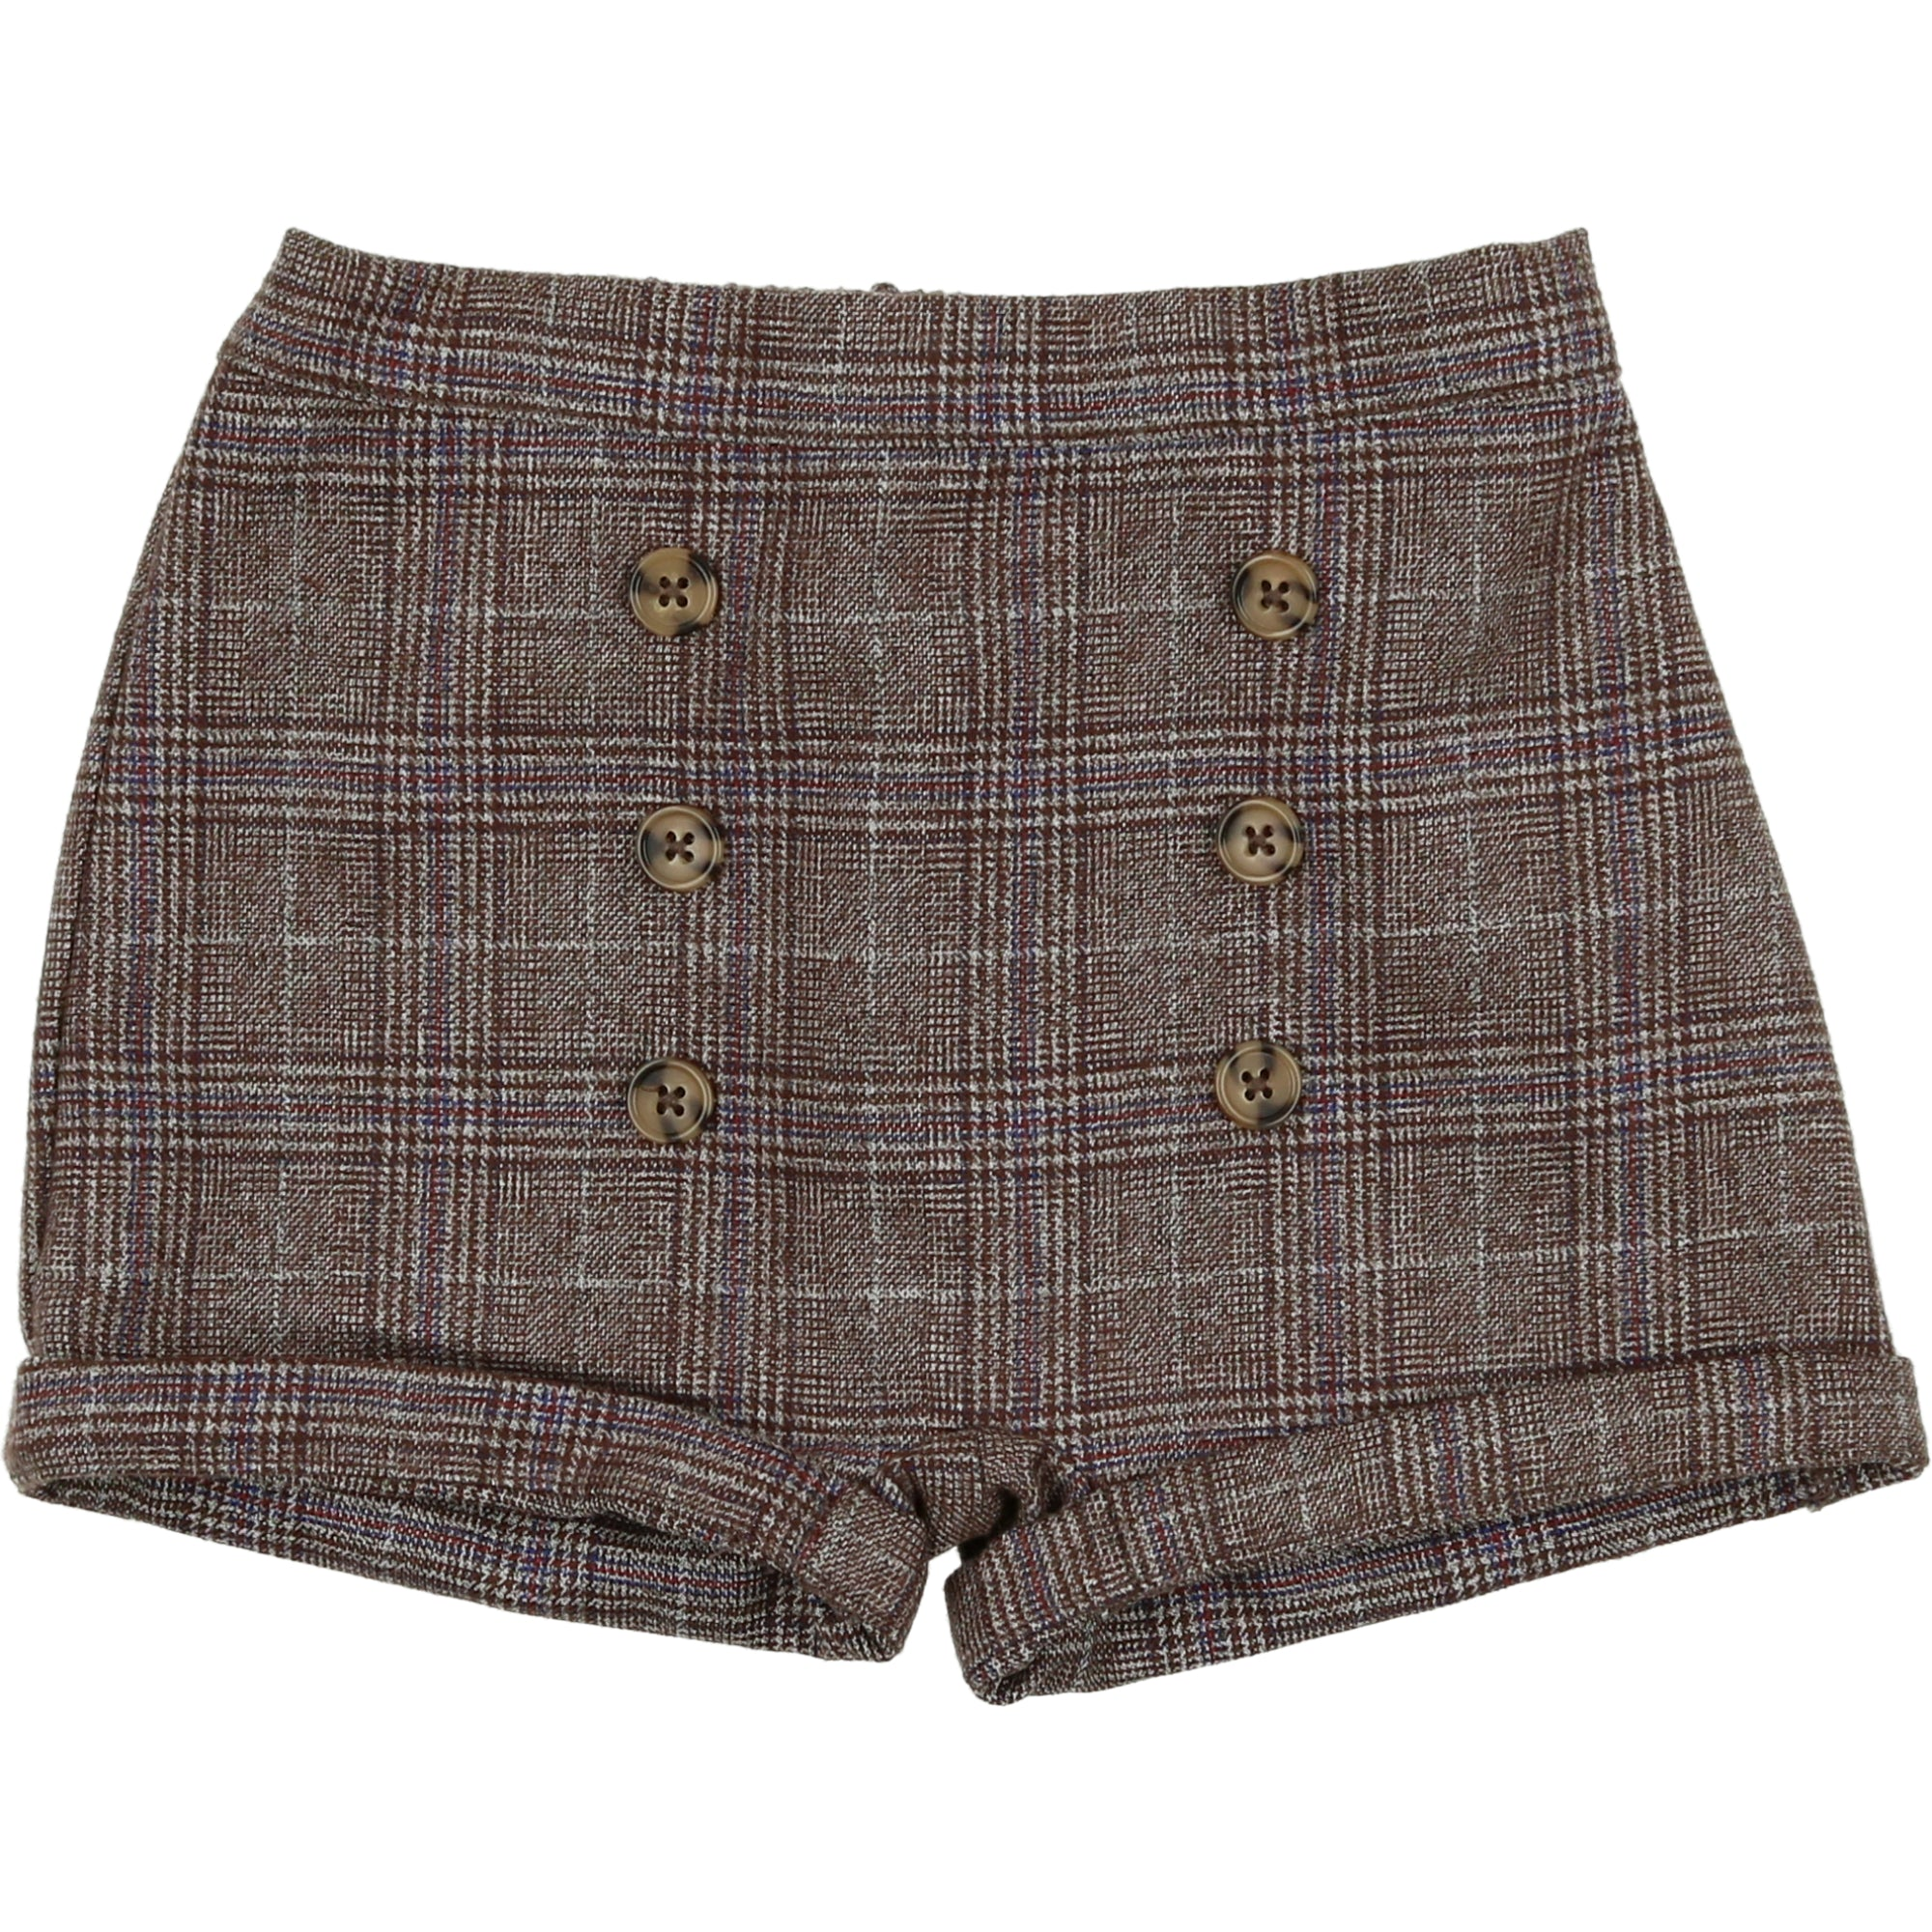 Delicat Brown Plaid Wool Shorts